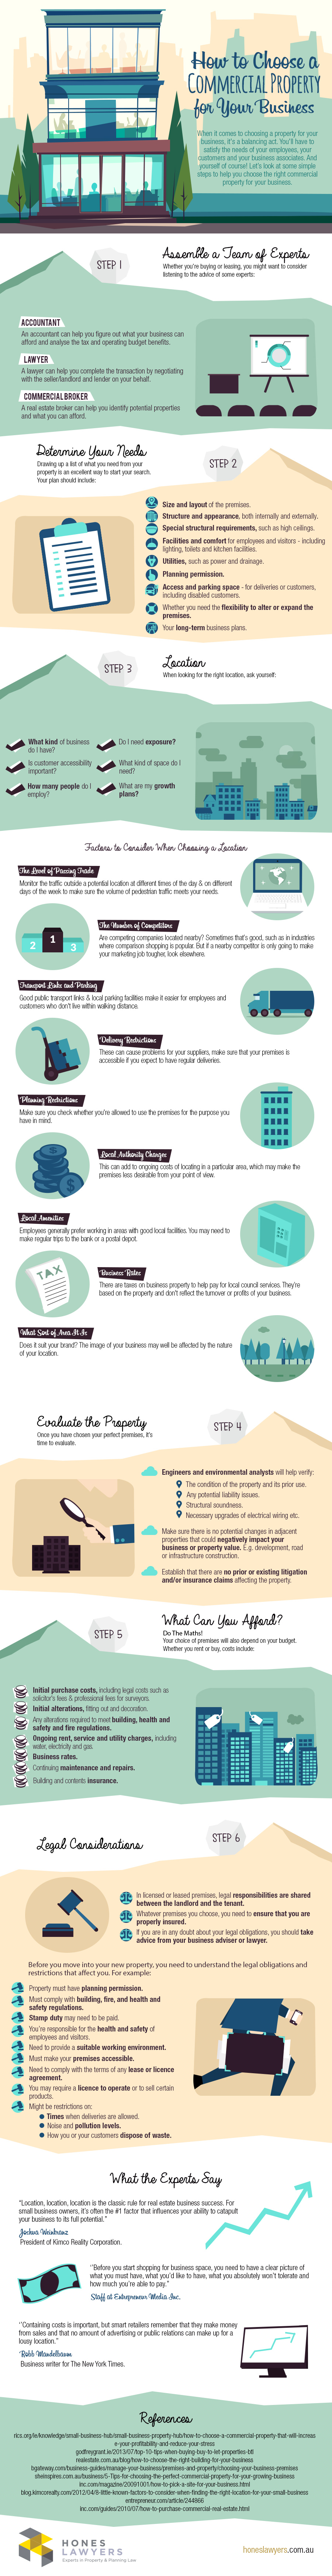 How to Choose a Commercial Property for Your Business [Infographic]